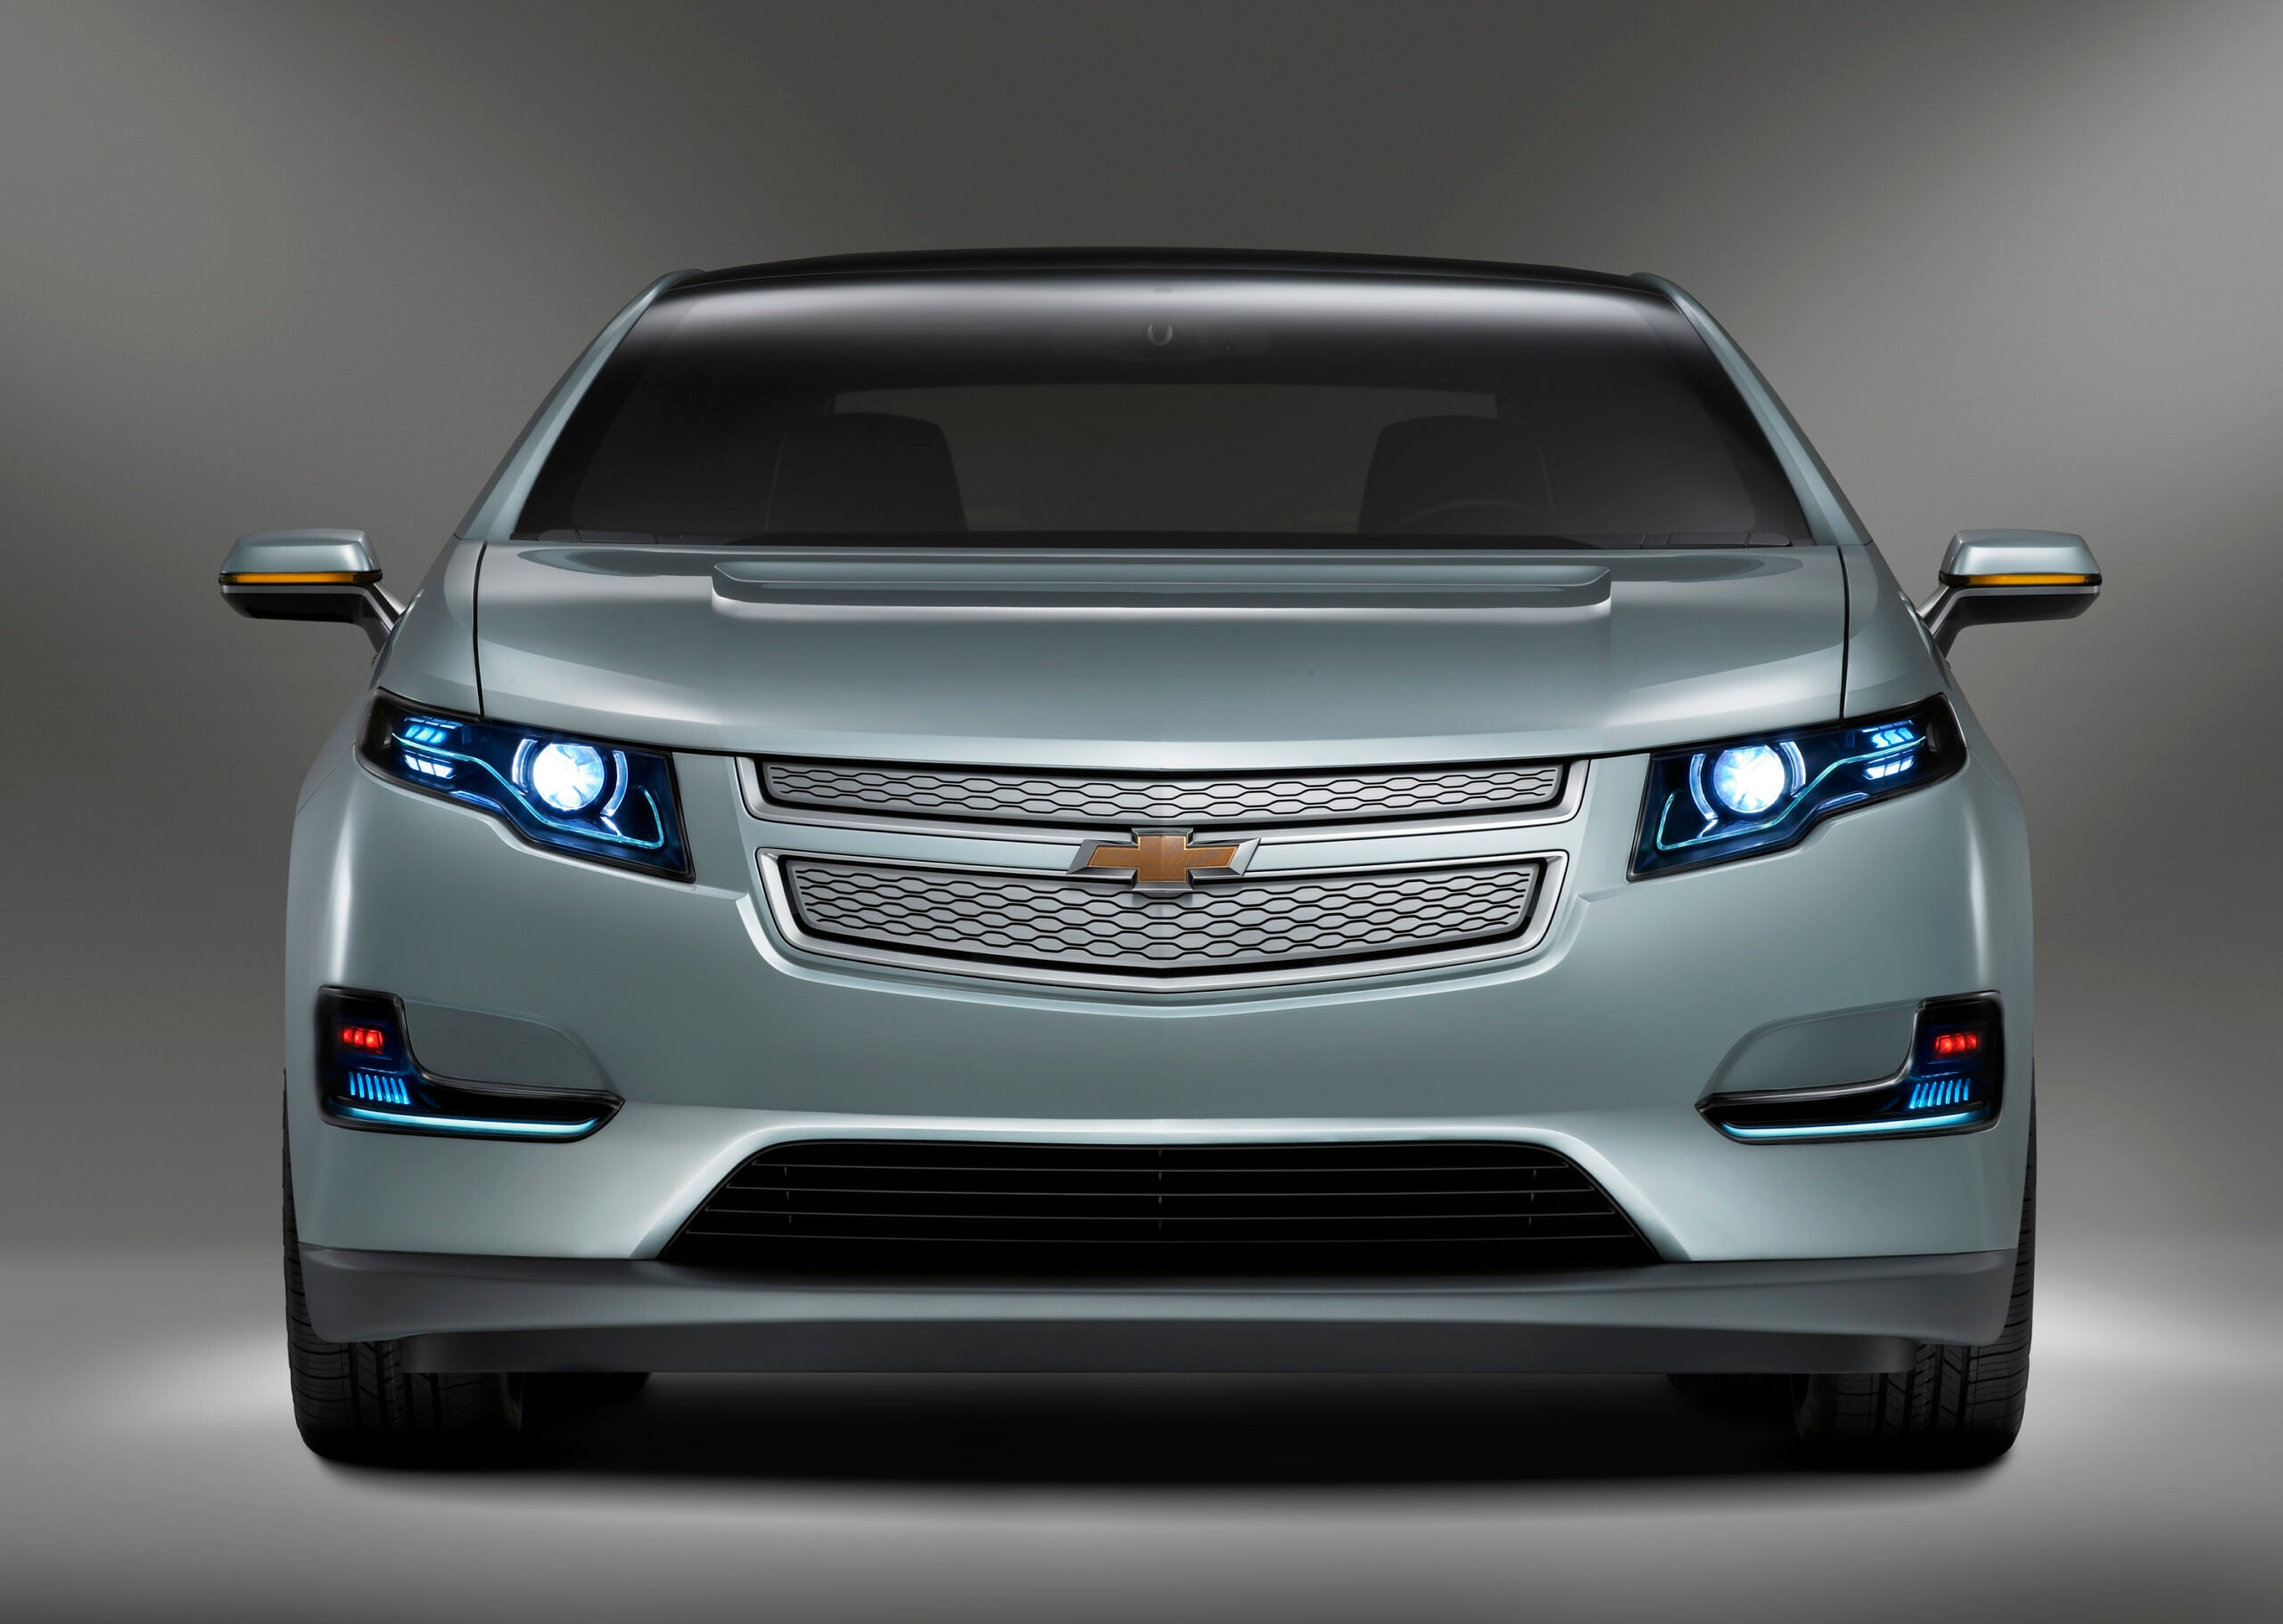 2011 Chevy Volt Unveiled